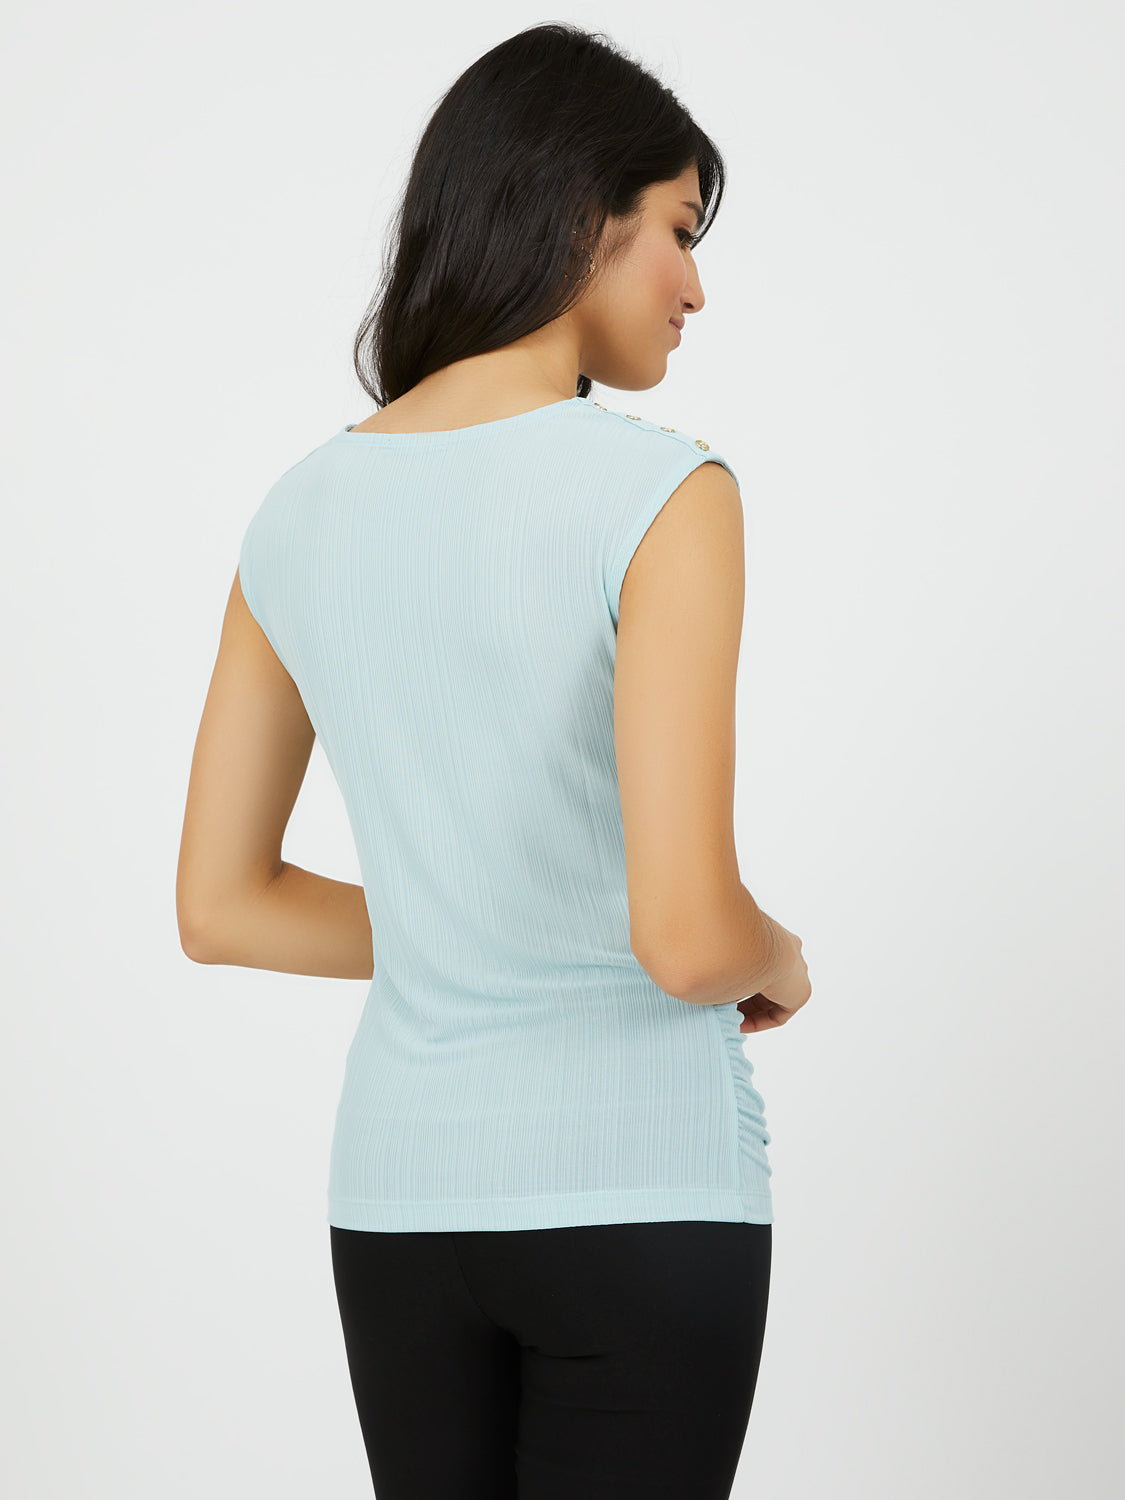 Variegated Rib Cap Sleeve Top